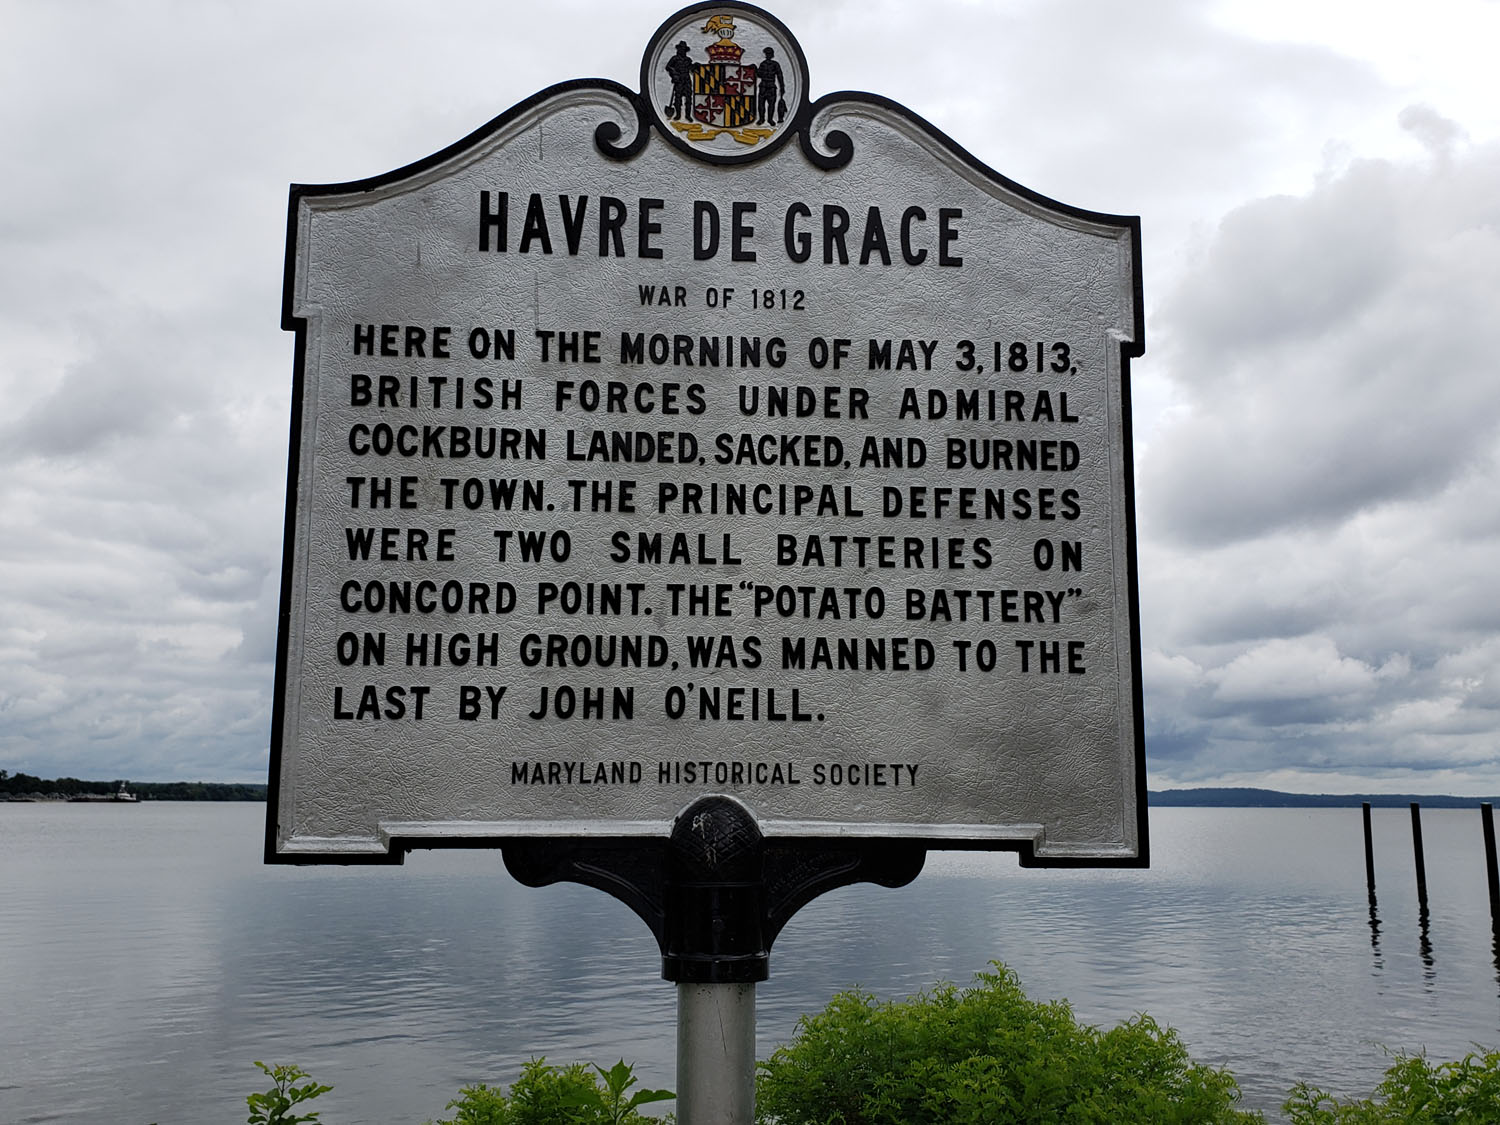 harve-de-grace-sign.jpg